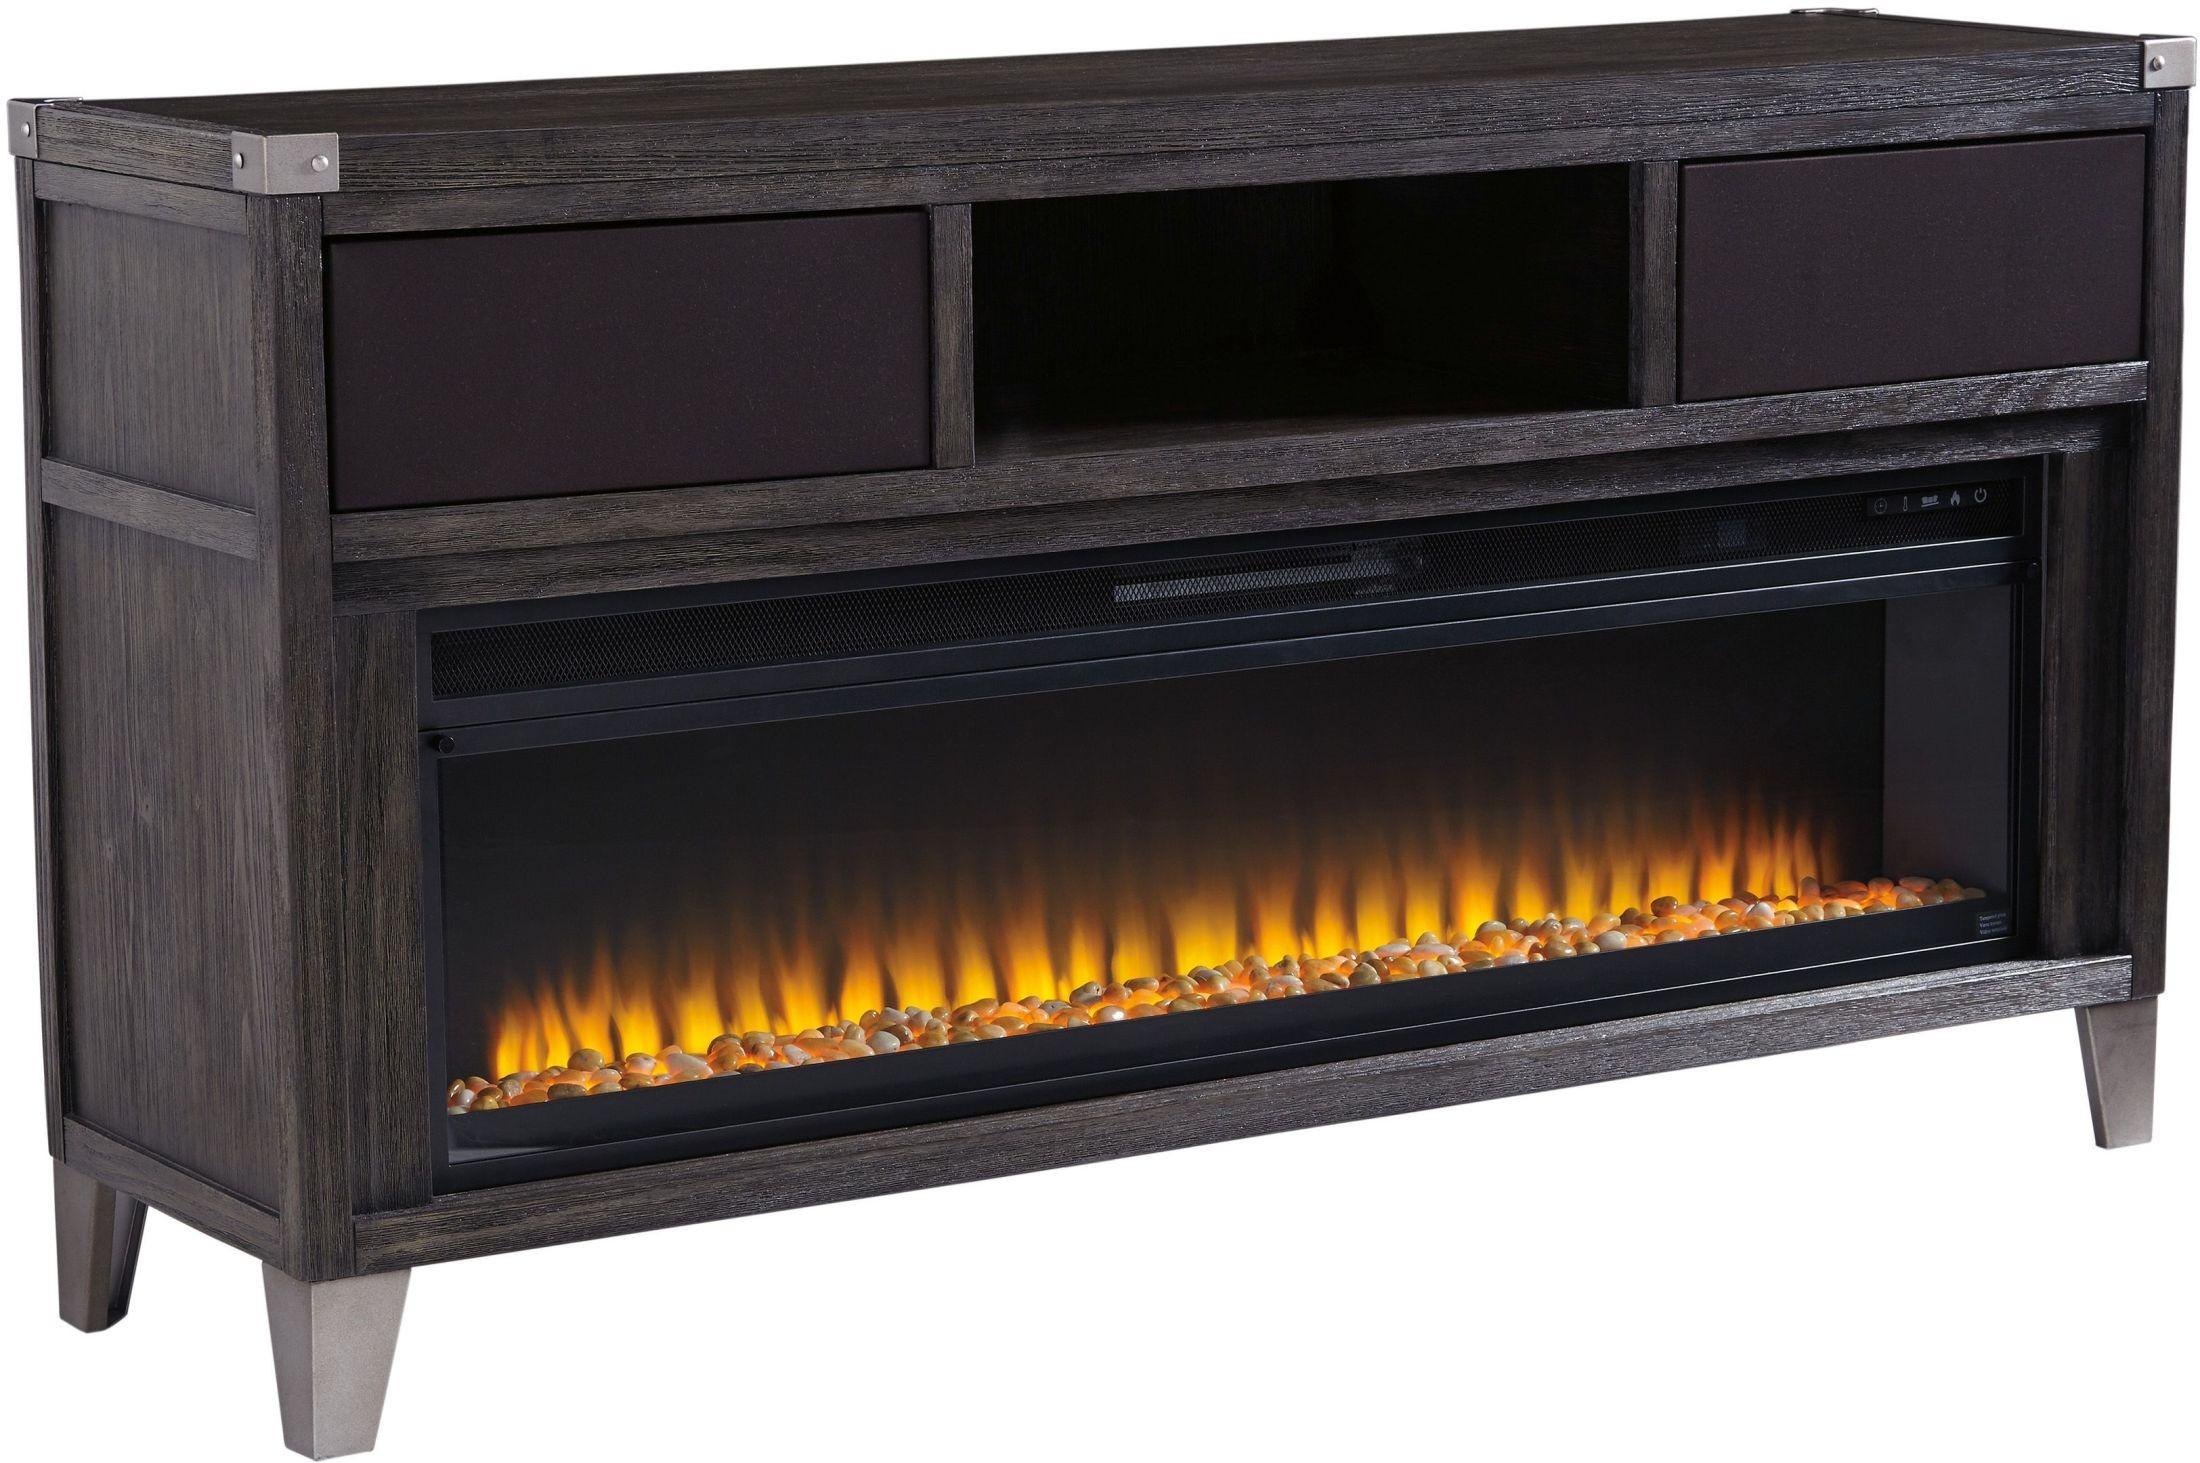 Todoe Gray Lg Tv Stand With Wide Fireplace Insert From Ashley